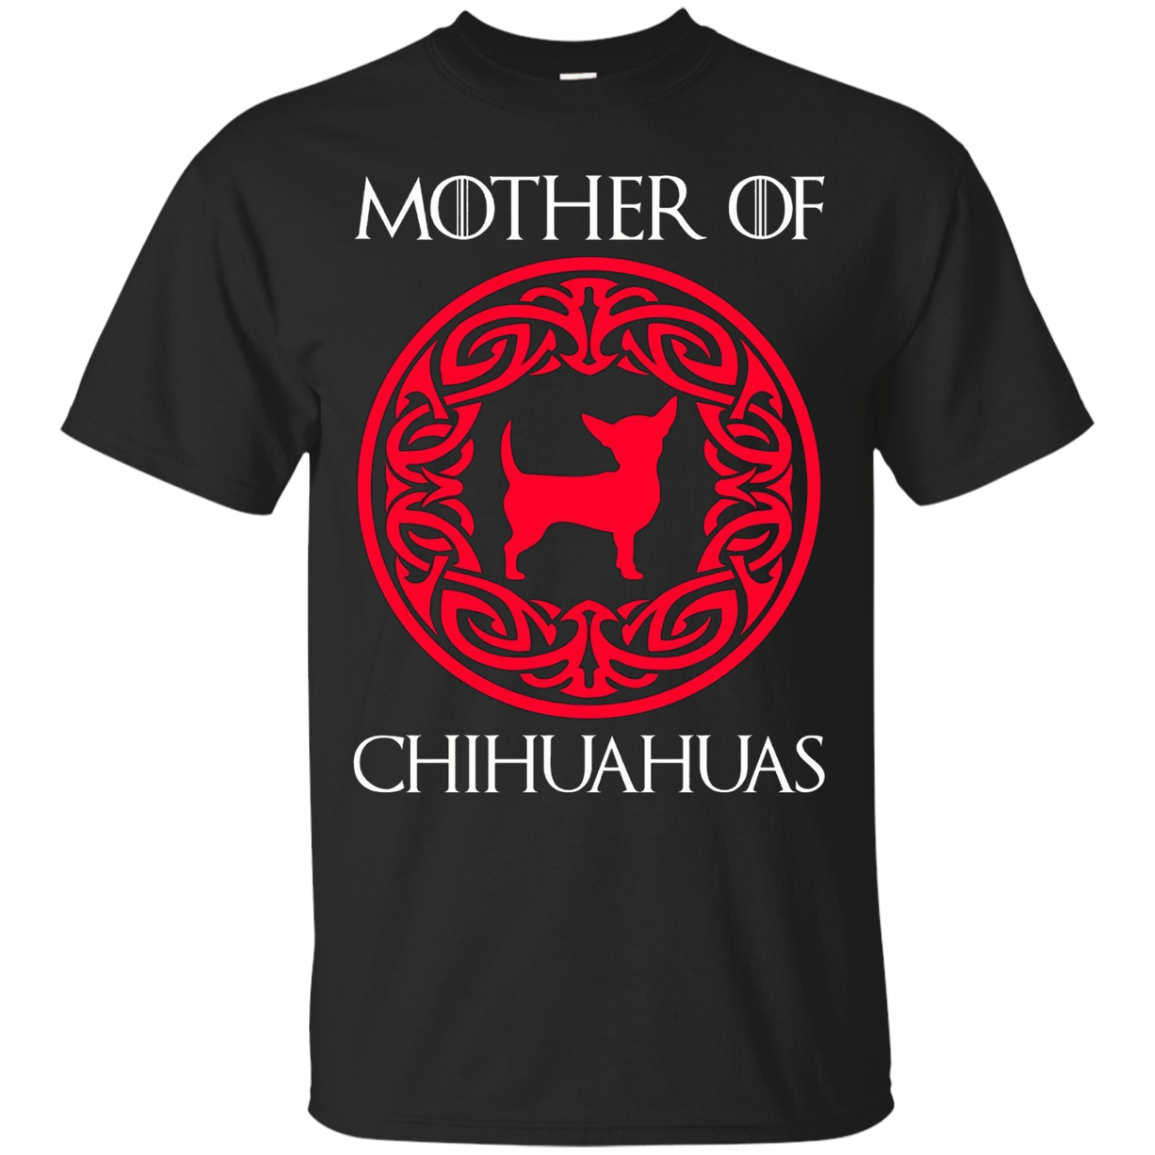 Mother Of Chihuahuas T-Shirt - Funny Chihuahua Lover Shirts